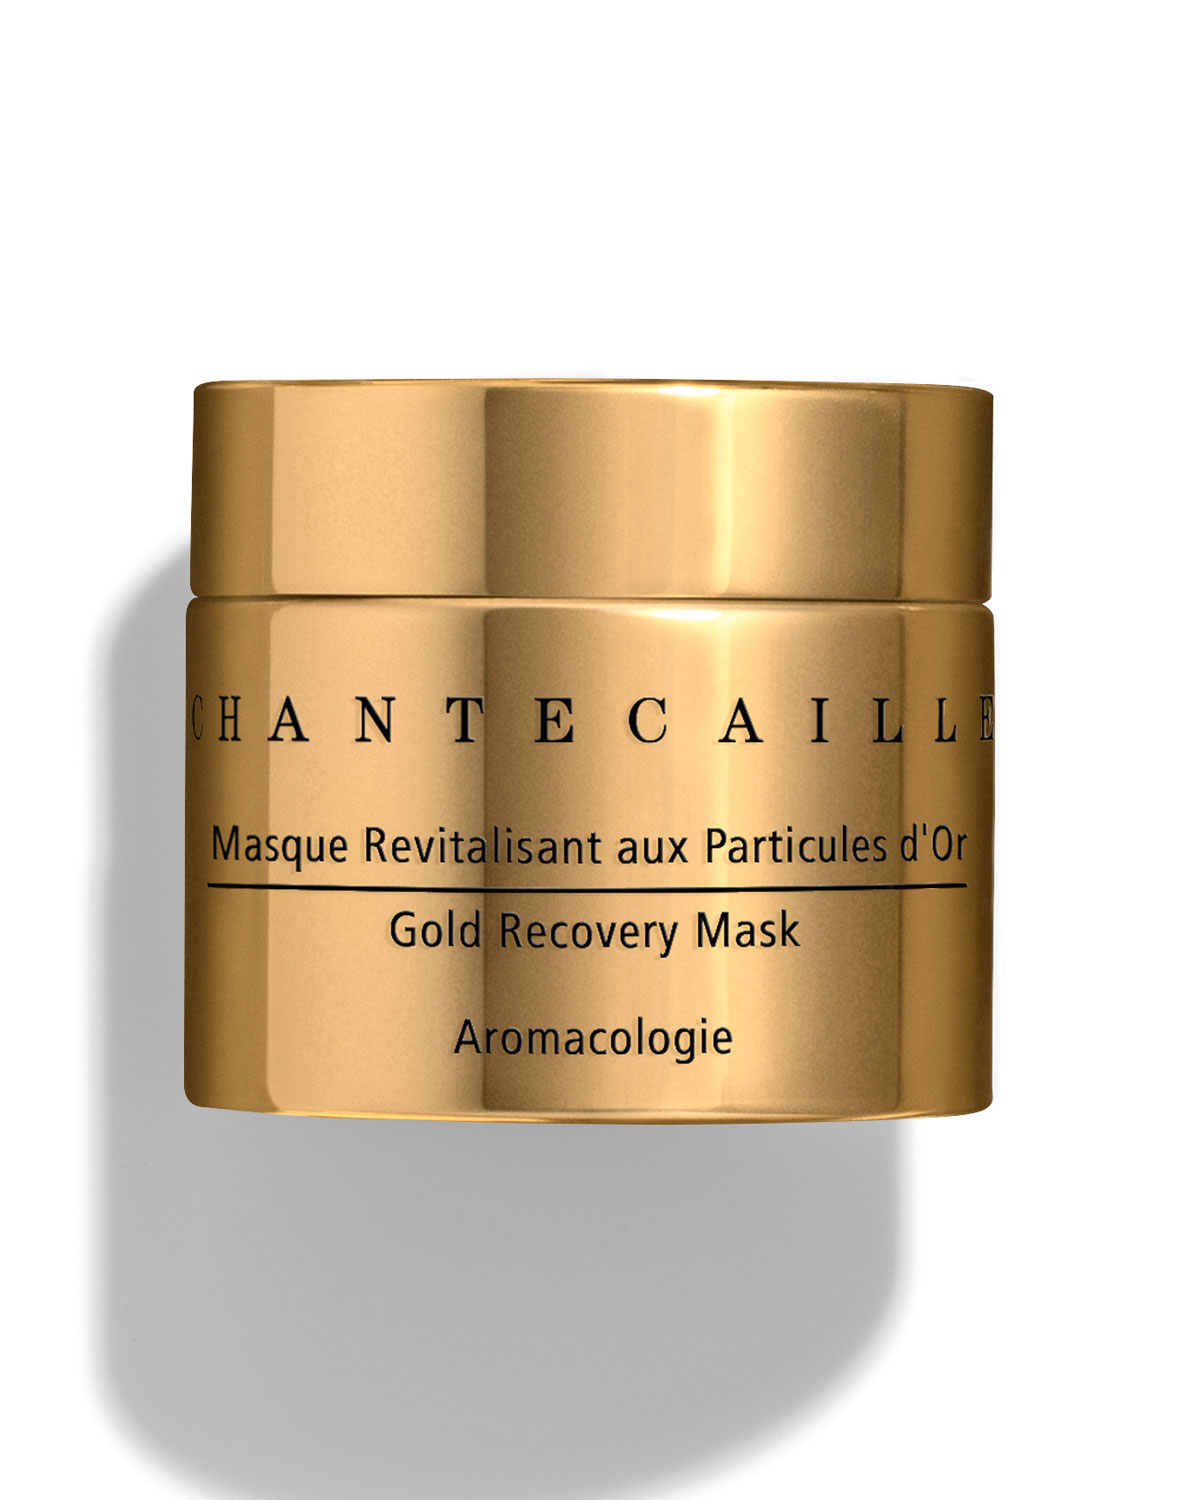 Gold Recovery Mask